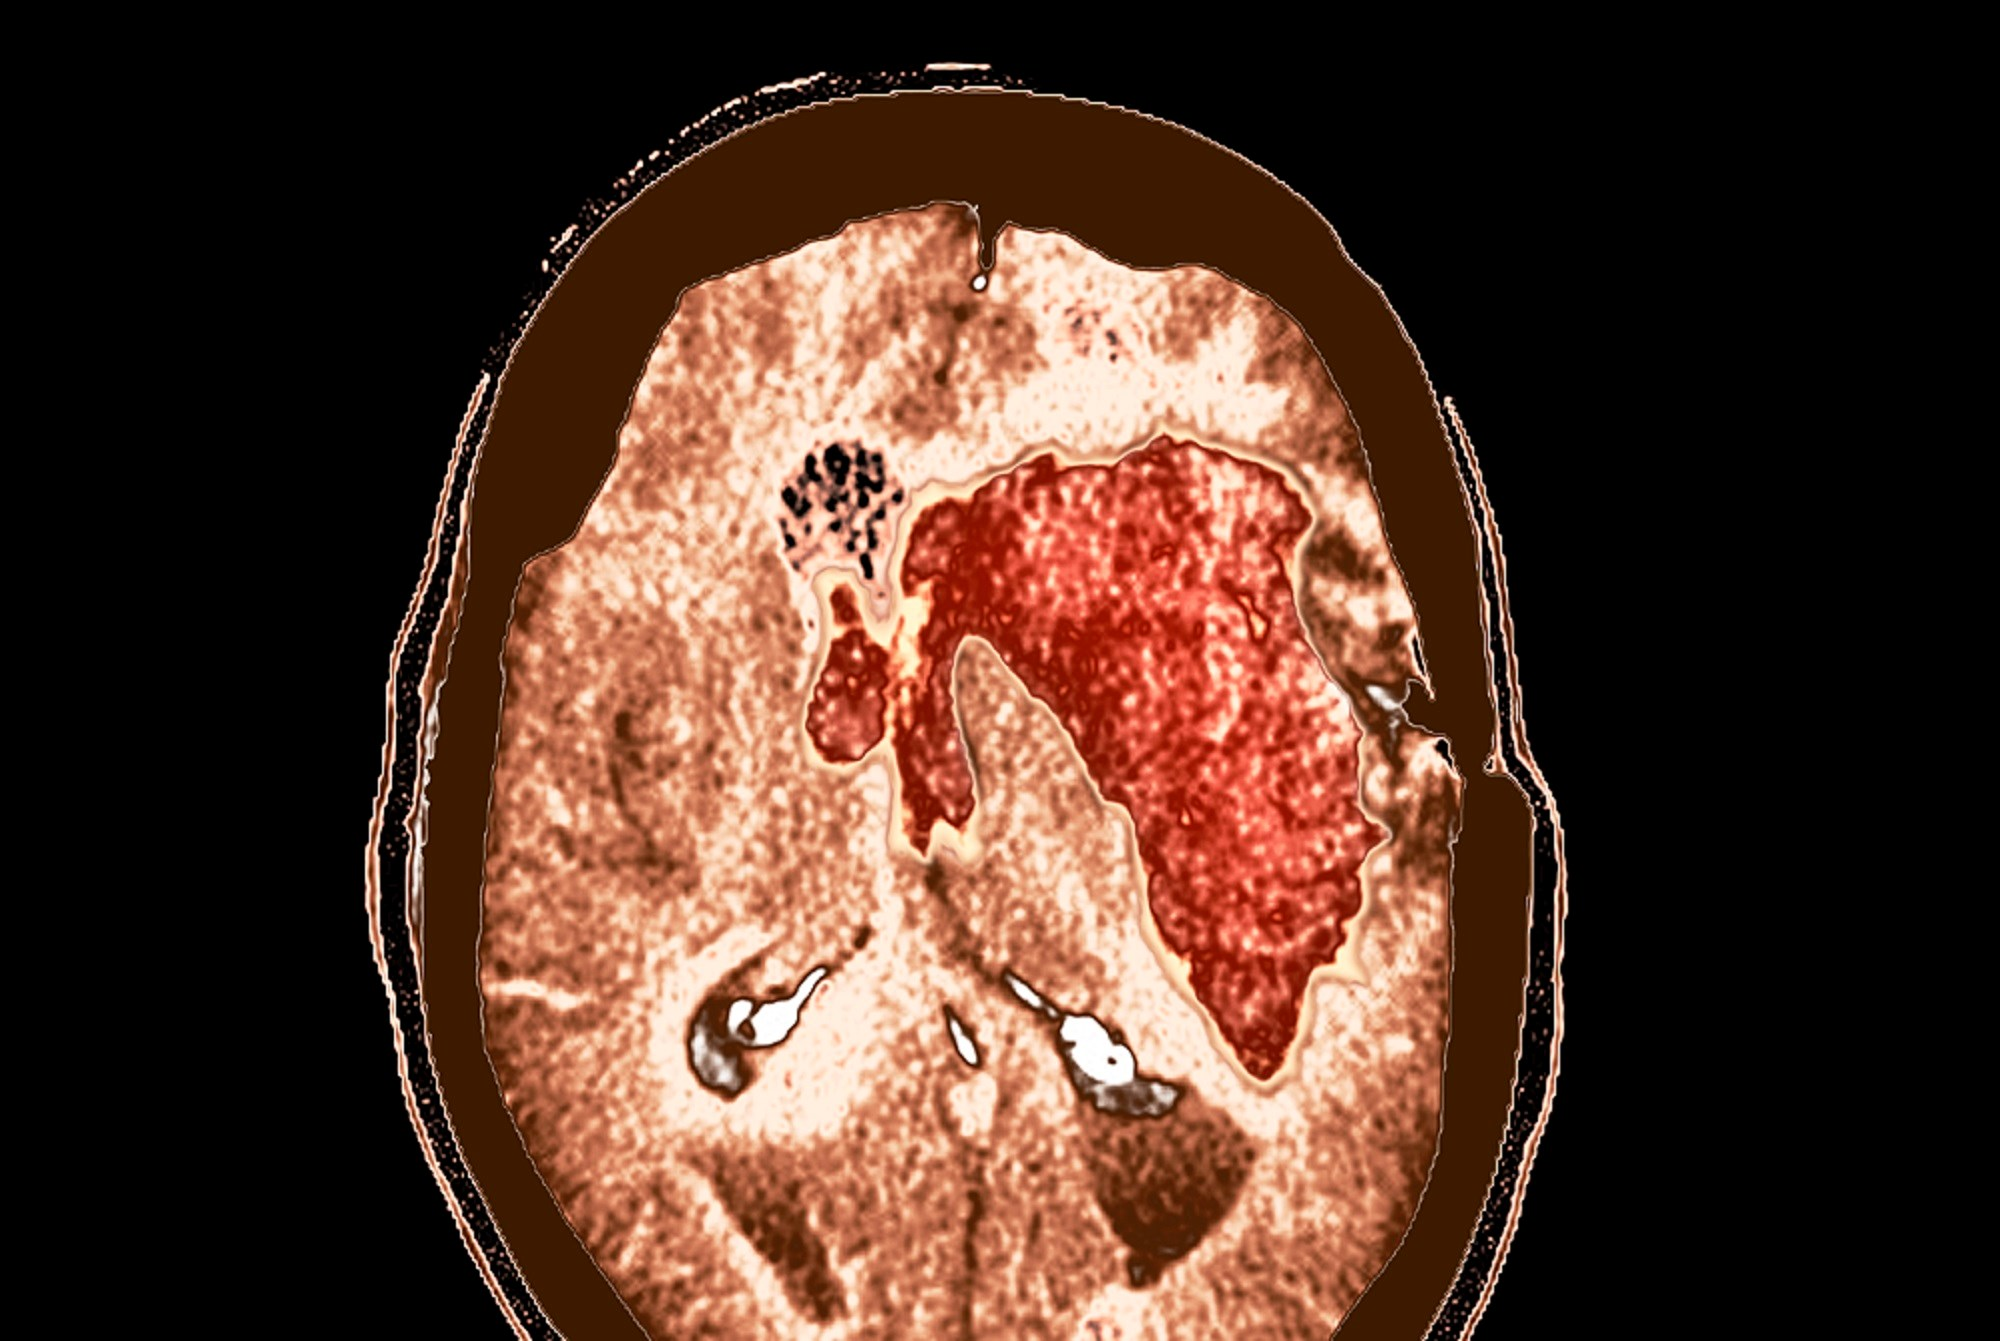 Early Neurological Deterioration in Intracranial Hemorrhage Linked to Worse Outcomes